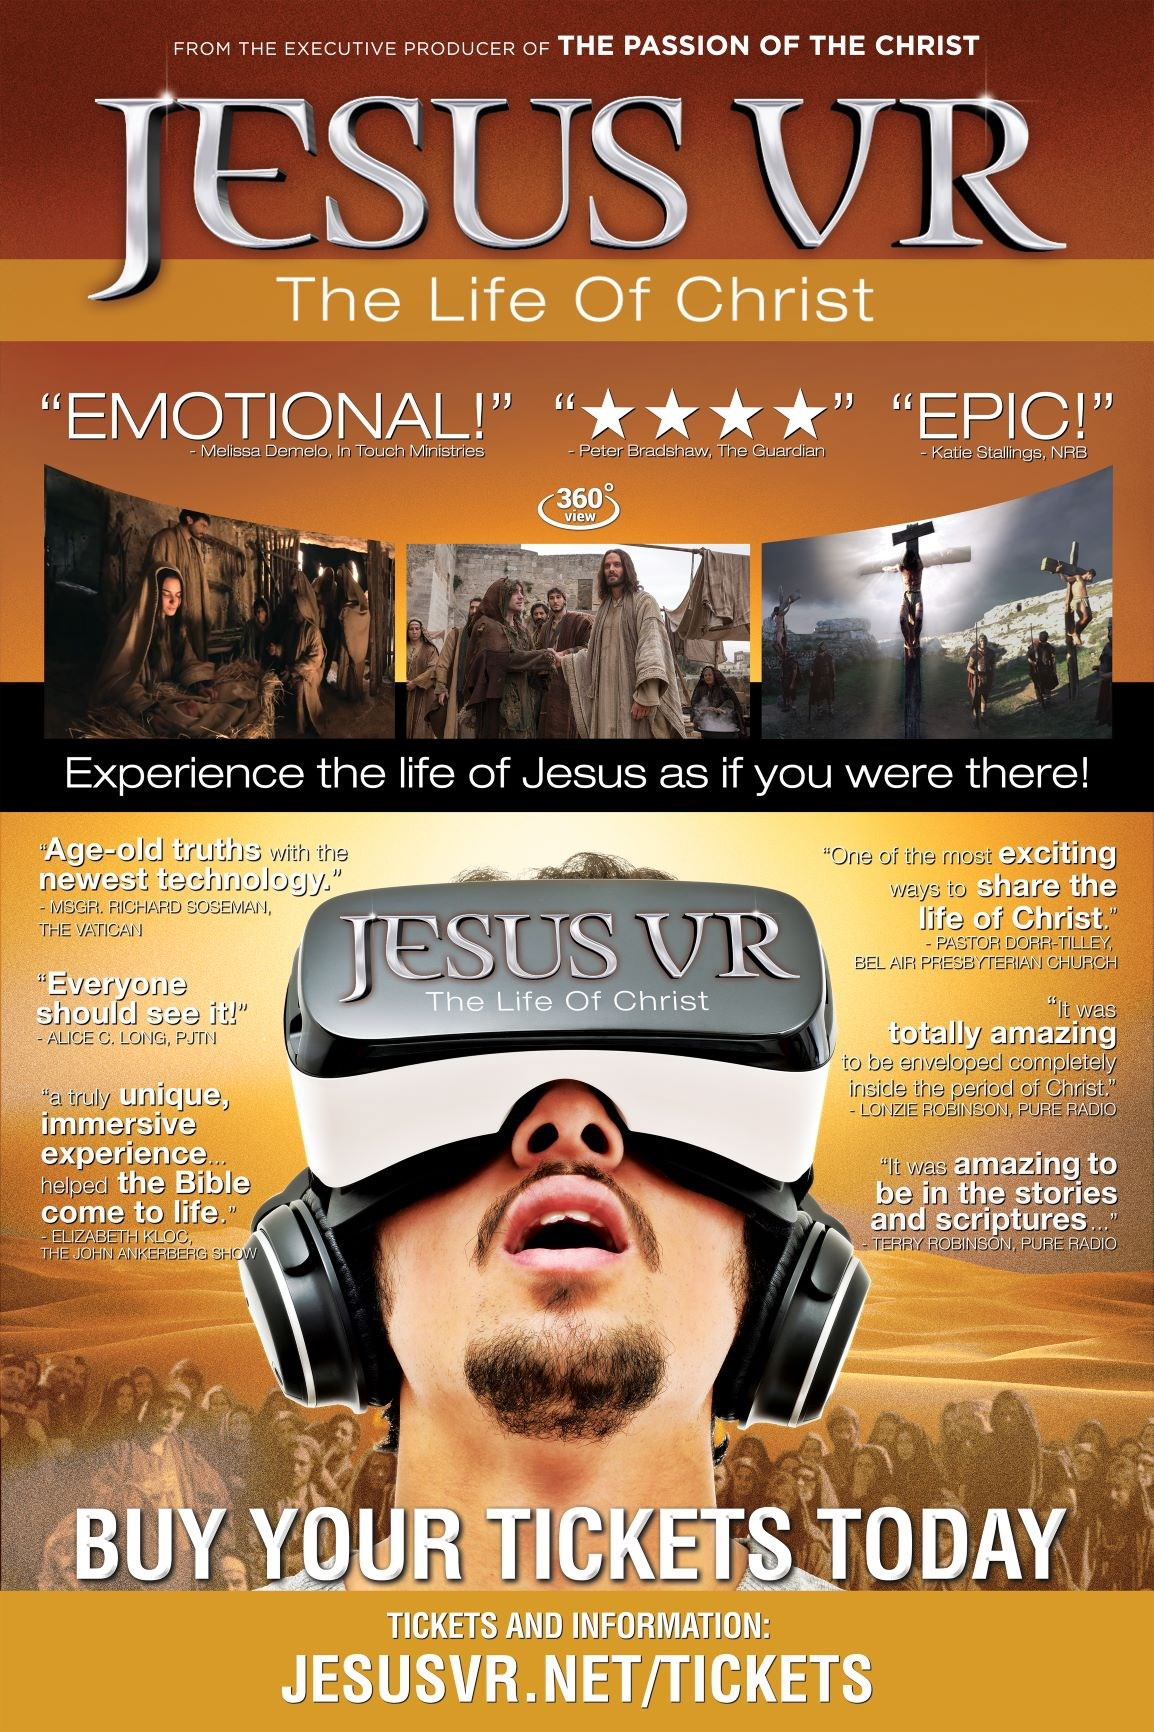 JesusVR Tour Orange County on May 27, 00:00@OC Plaza - Buy tickets and Get information on JesusVR jesusvr